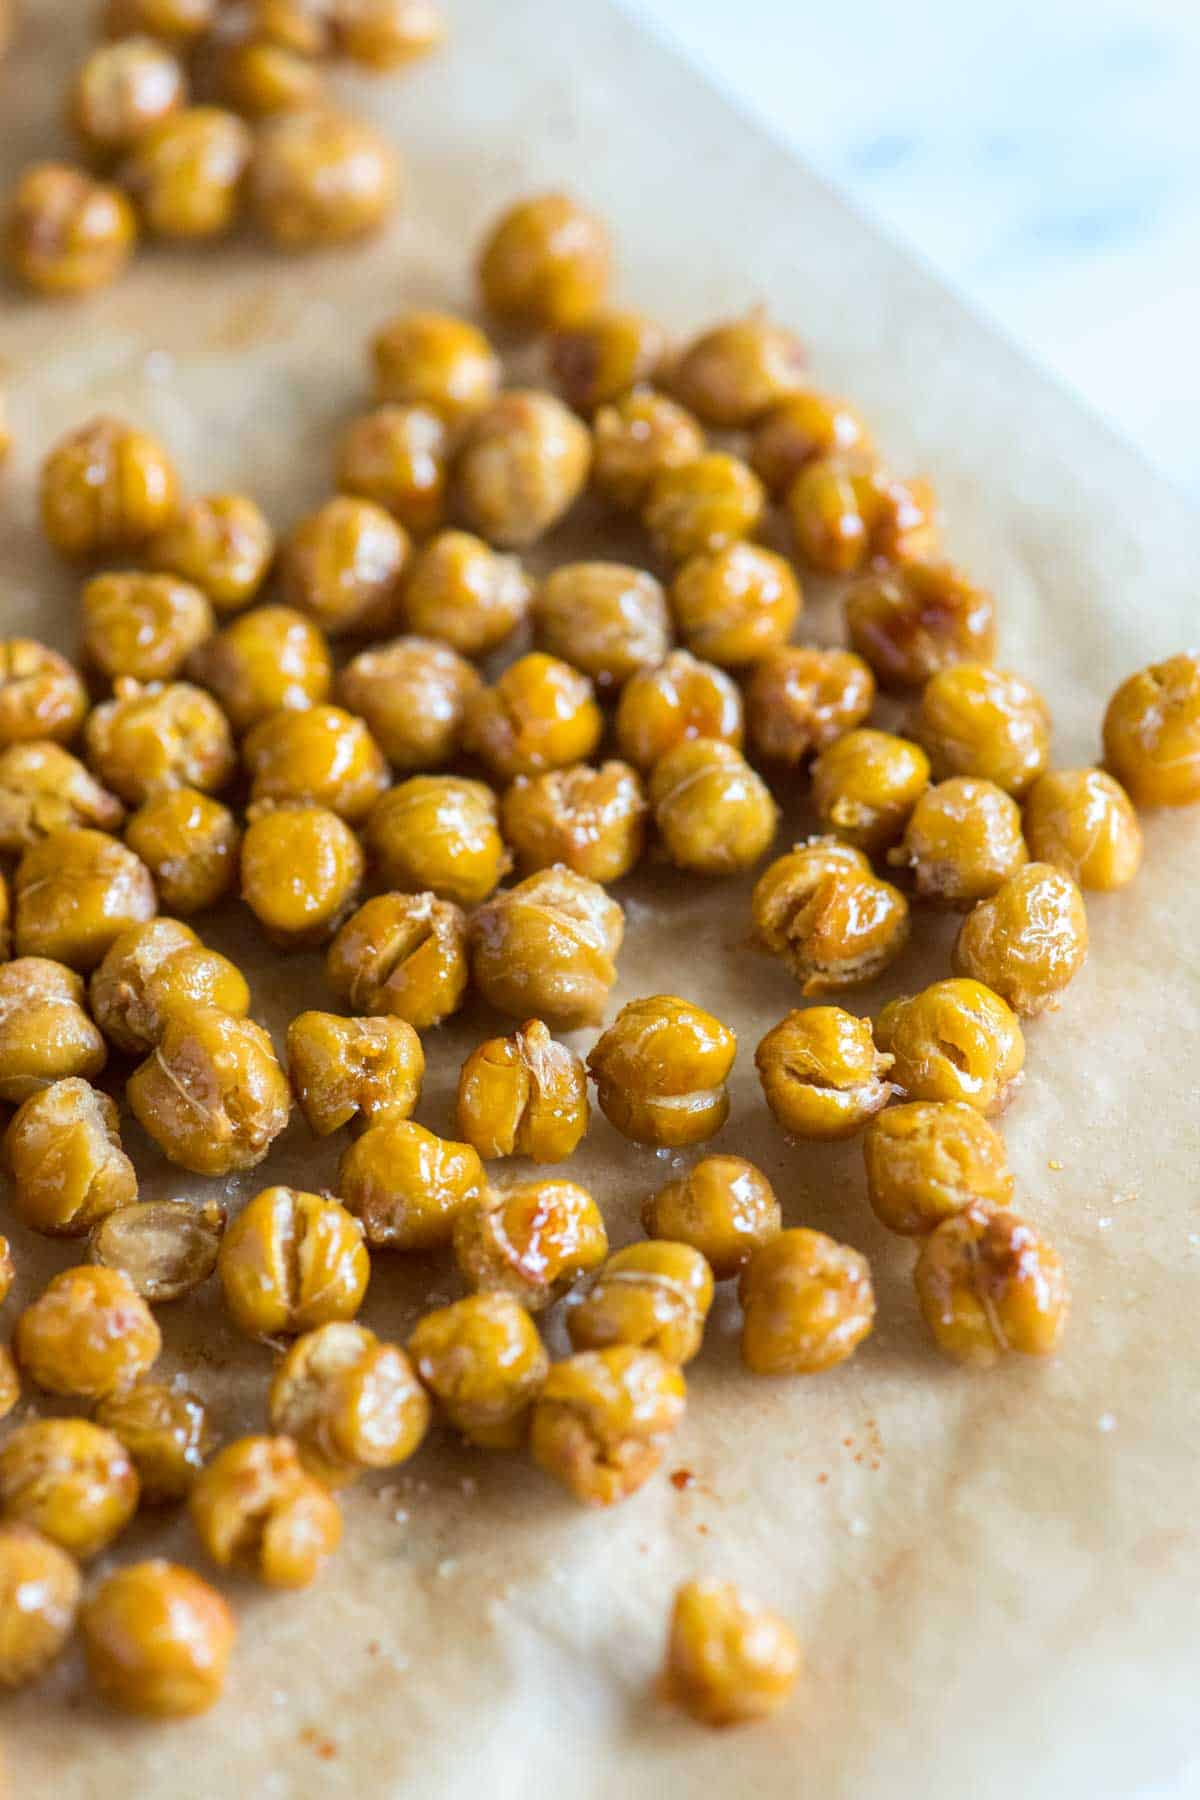 How to Make Crispy Chickpeas in the Oven